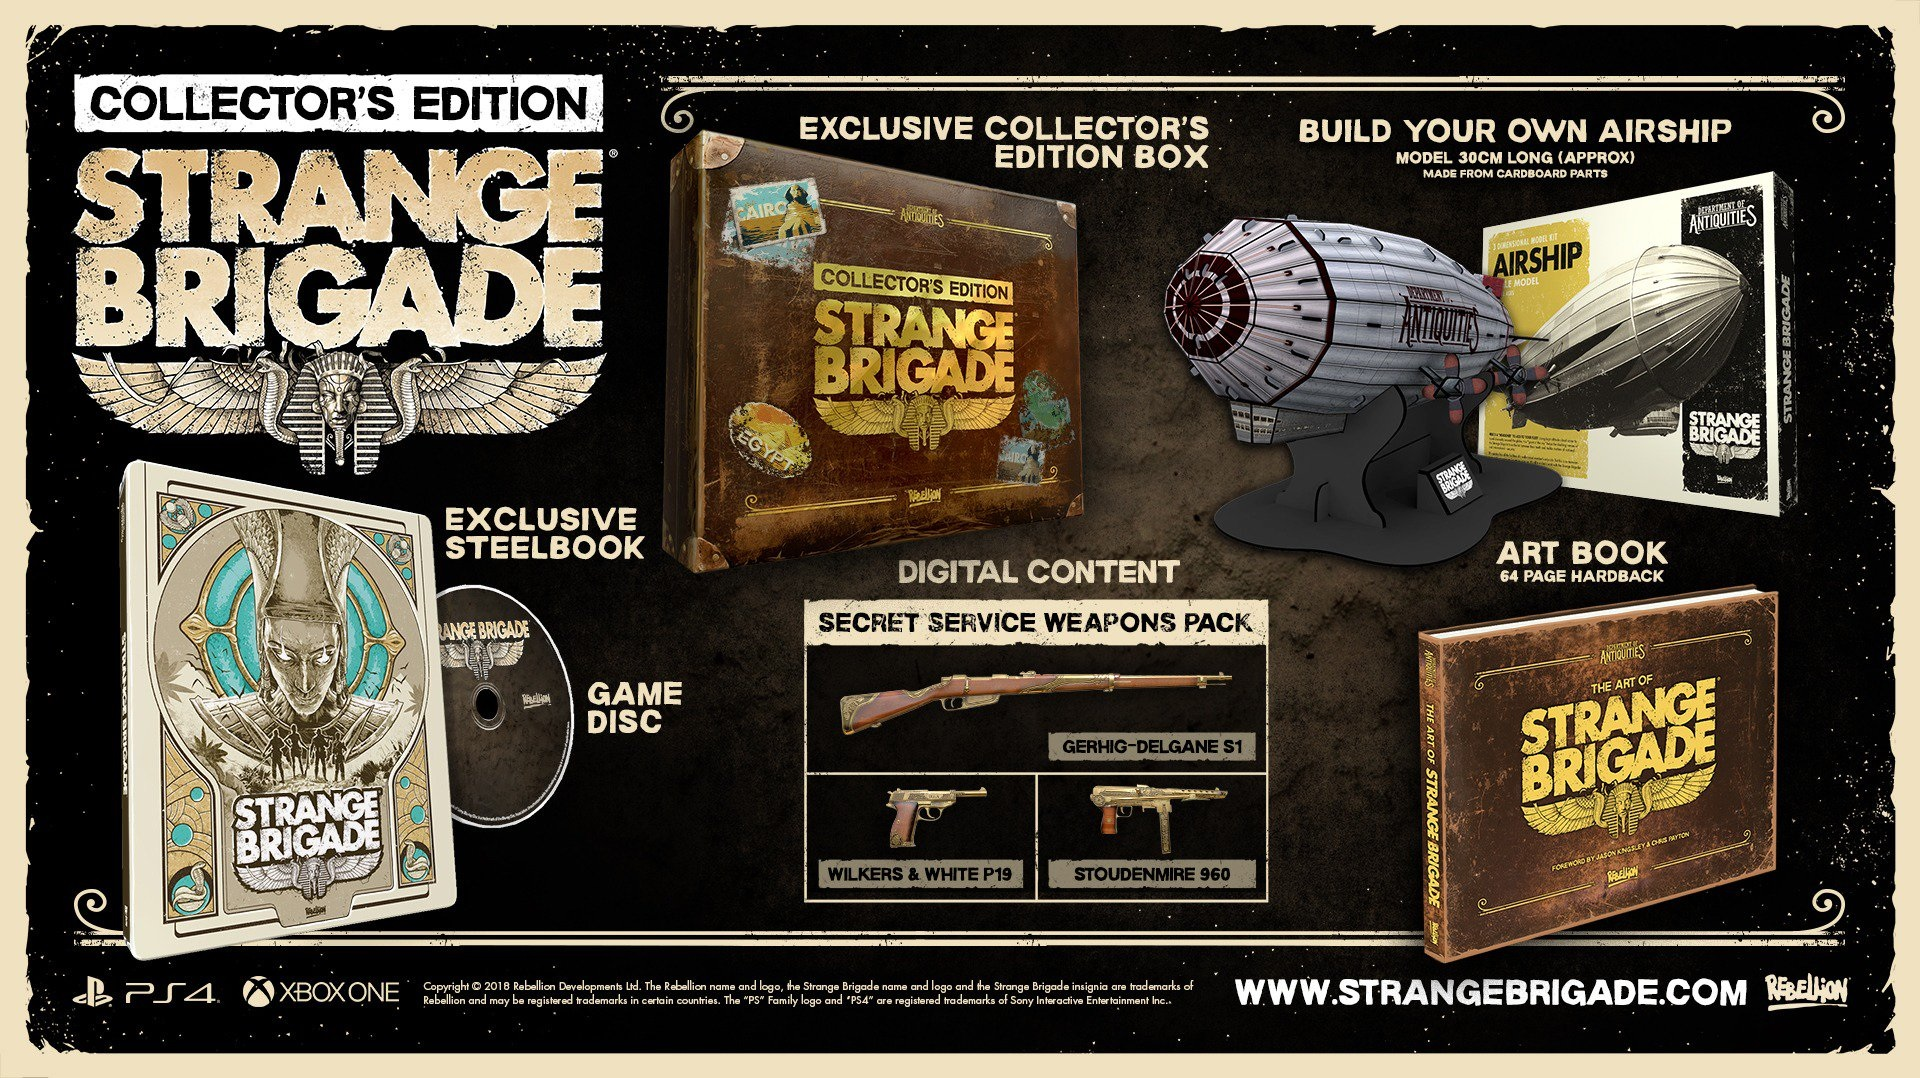 Strange Brigade Collector's Edition